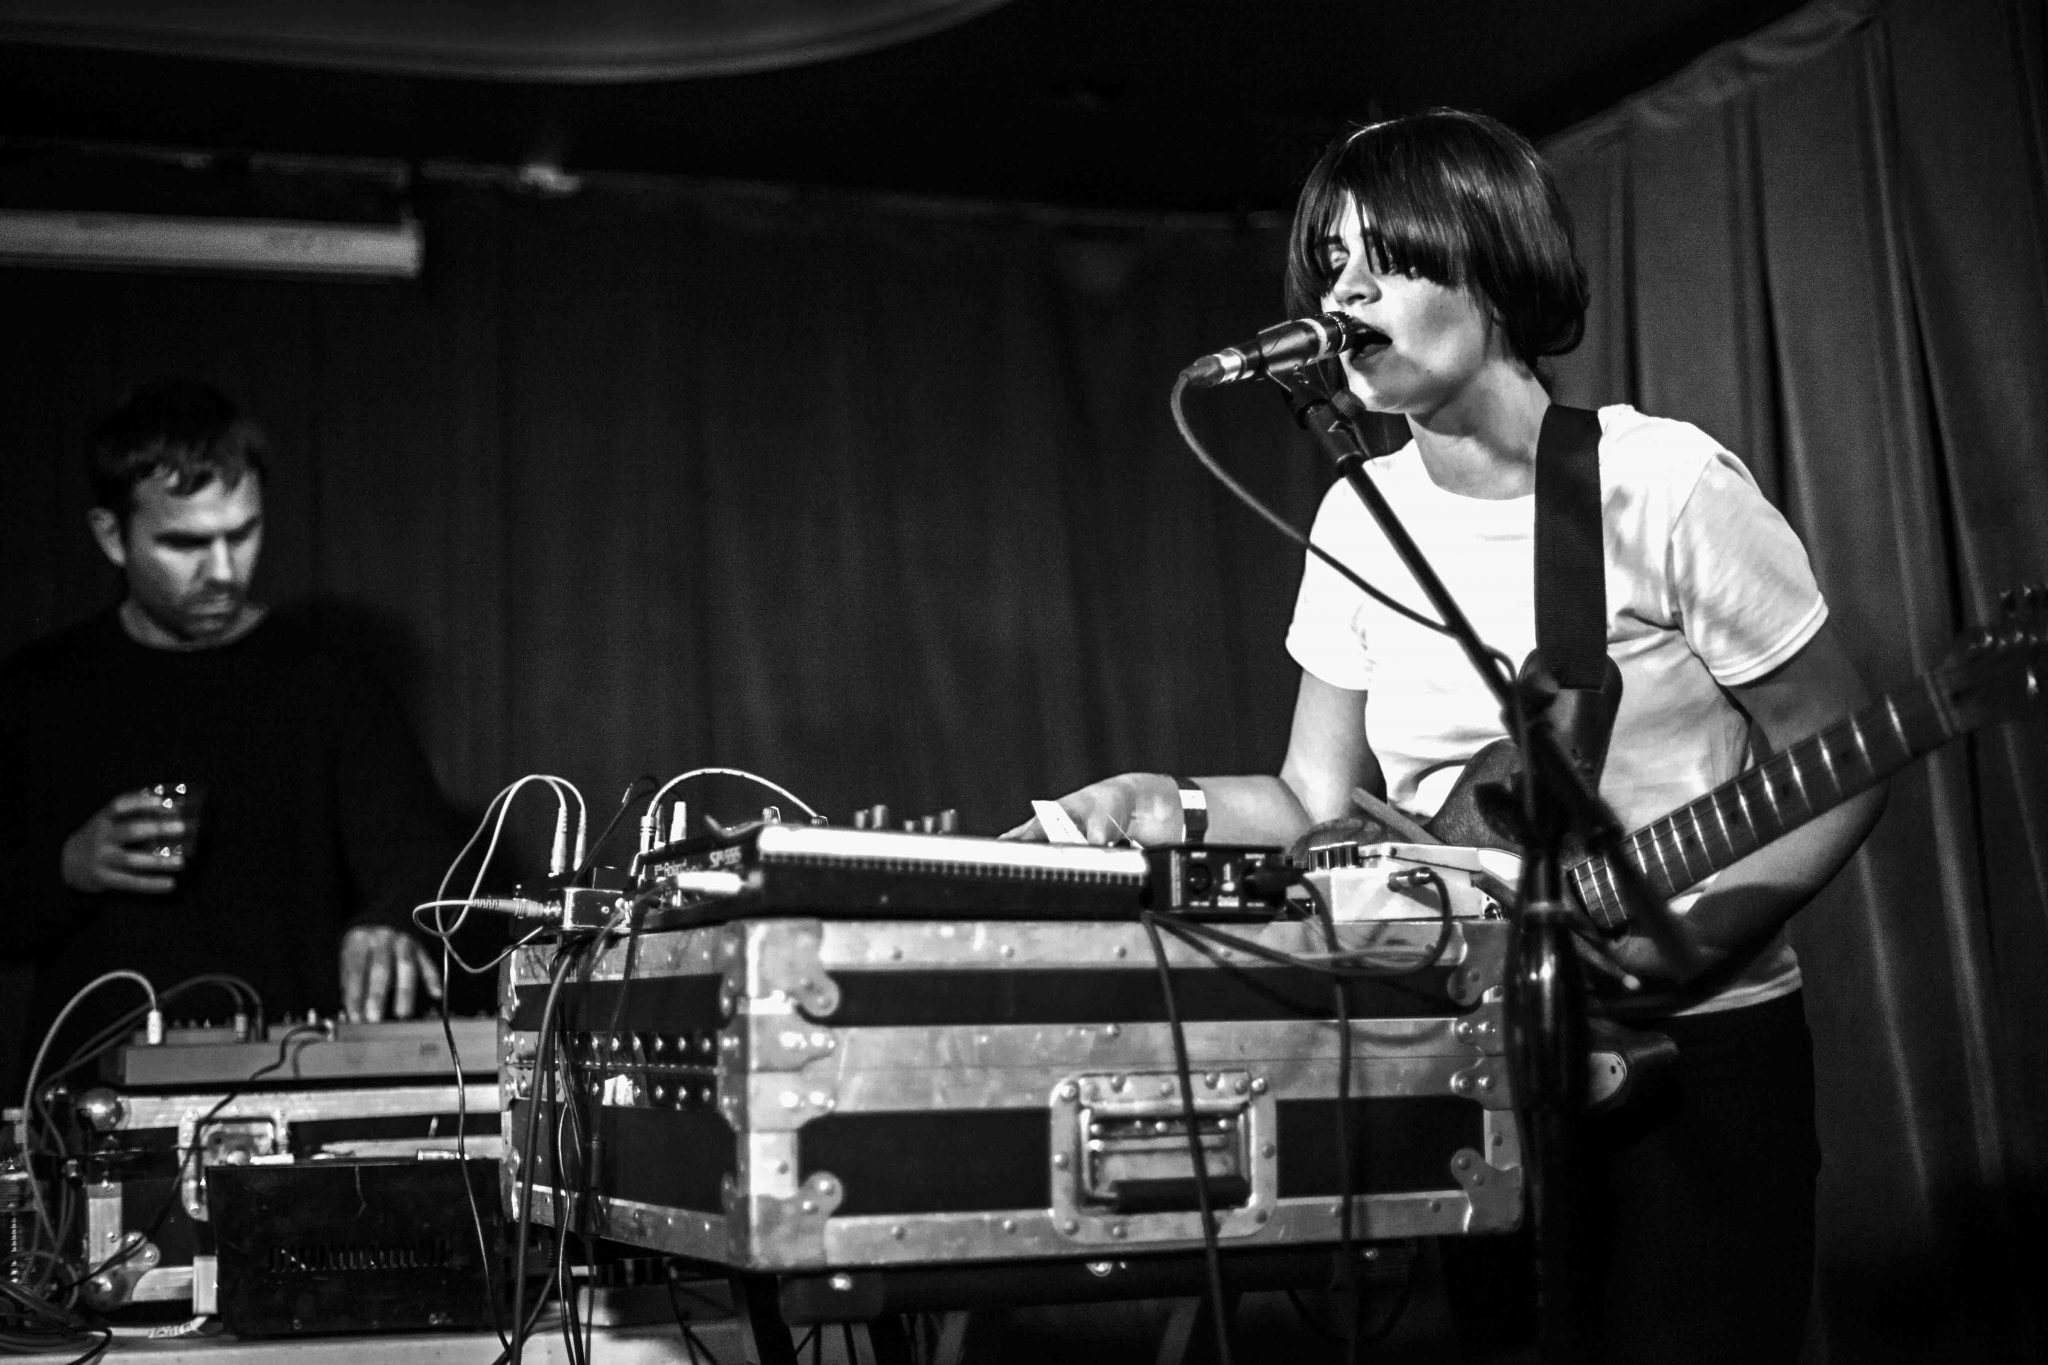 Factory Floor at Barboza (Photo by Daniel Ahrendt)